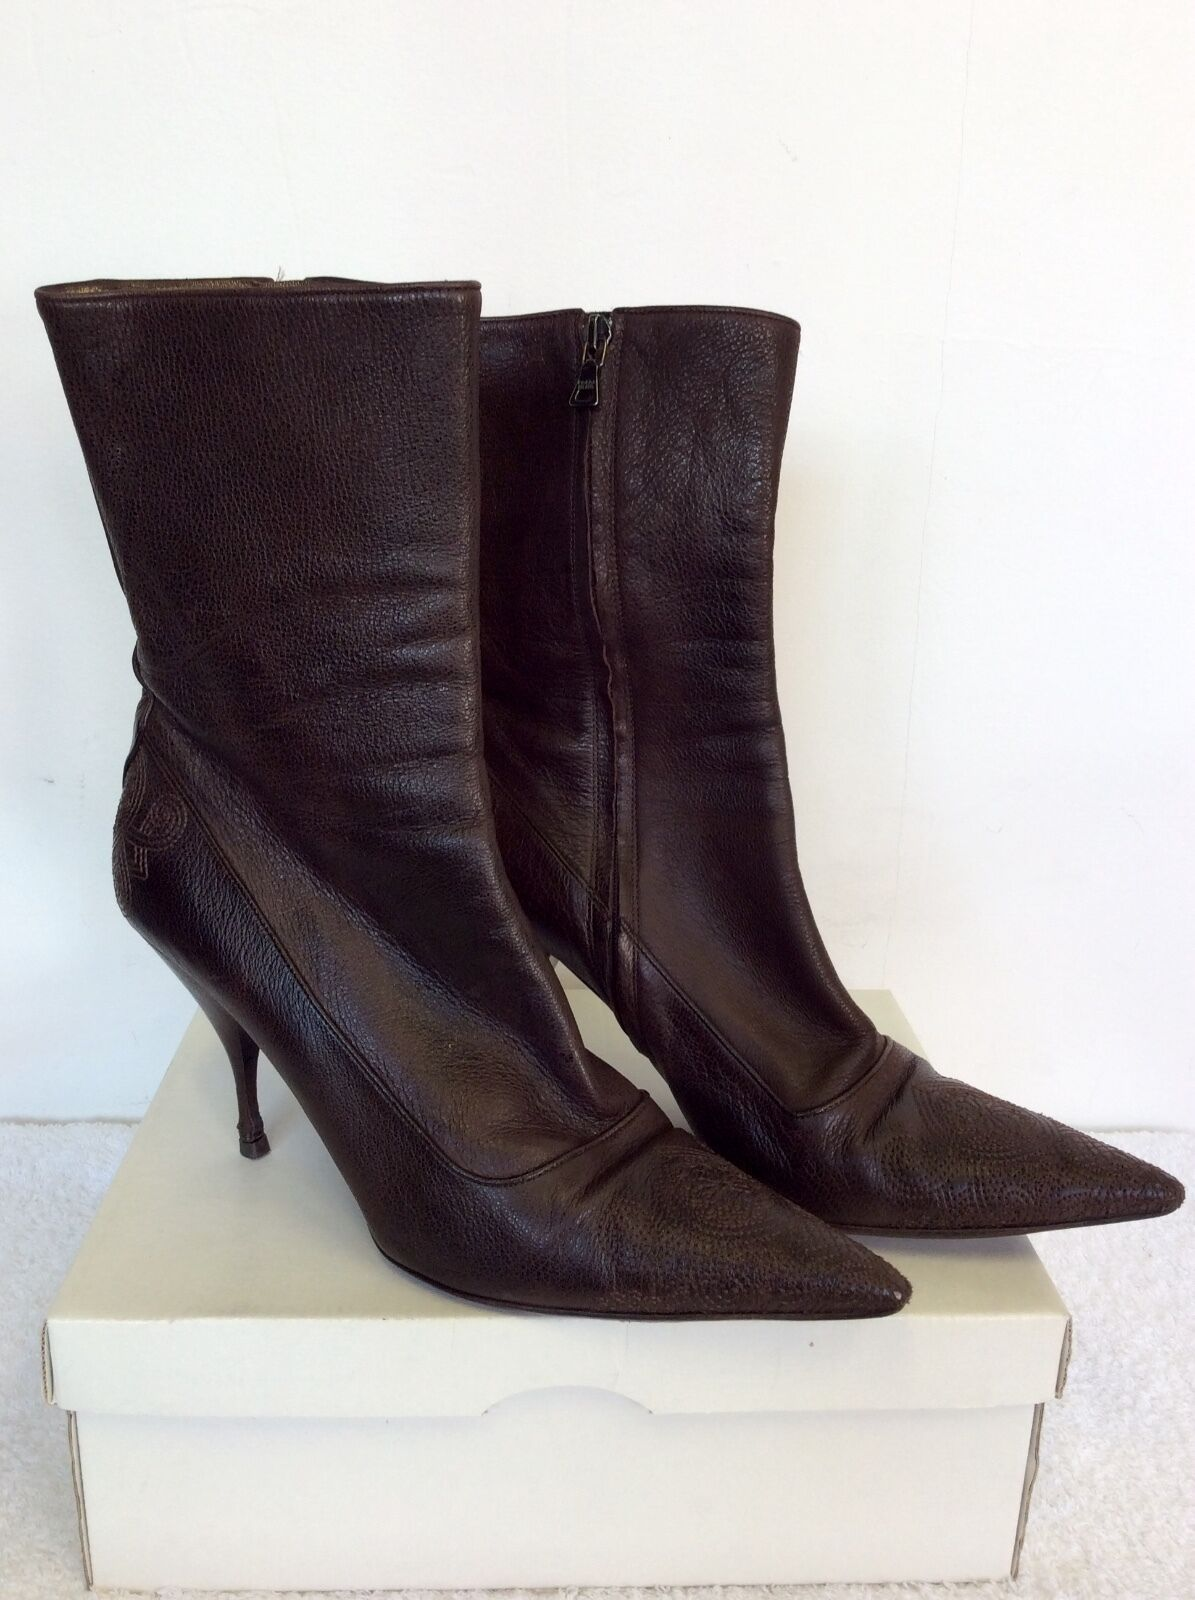 PRADA DARK BROWN LEATHER CALF LENGTH BOOTS SIZE SIZE SIZE 7.5  40.5 22ff04